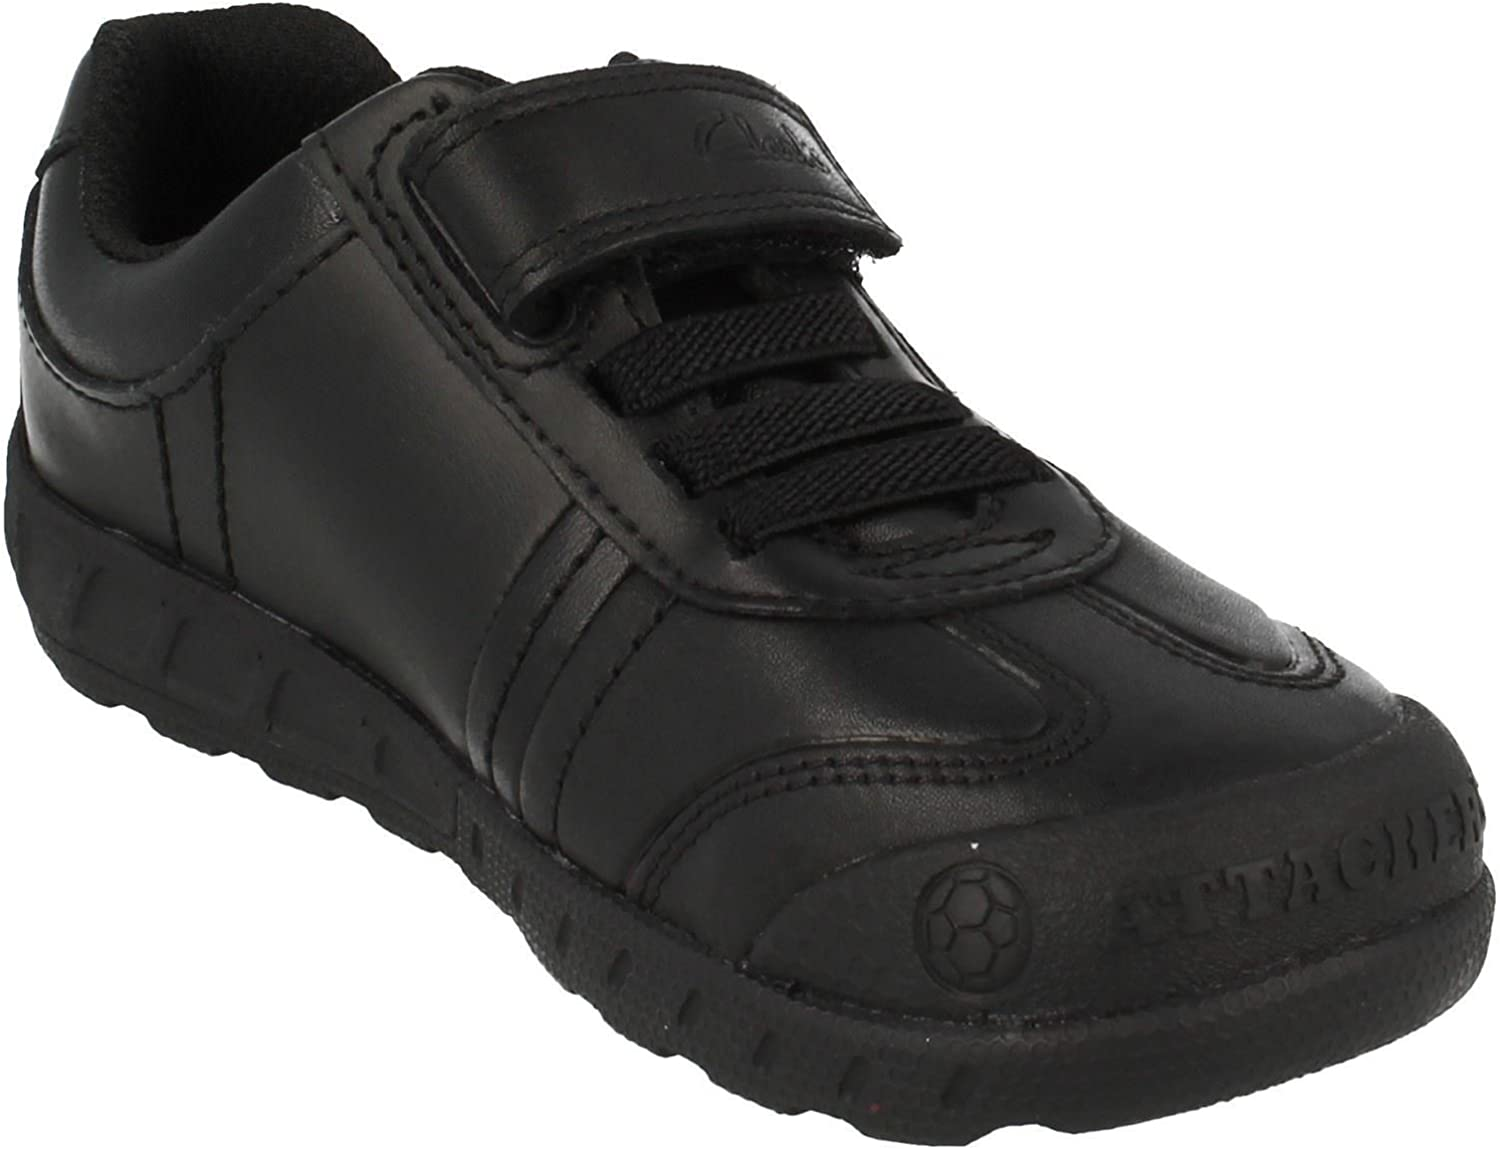 Clarks Leader Play Infant Leather Shoes In Black Extra Wide Fit Size 10